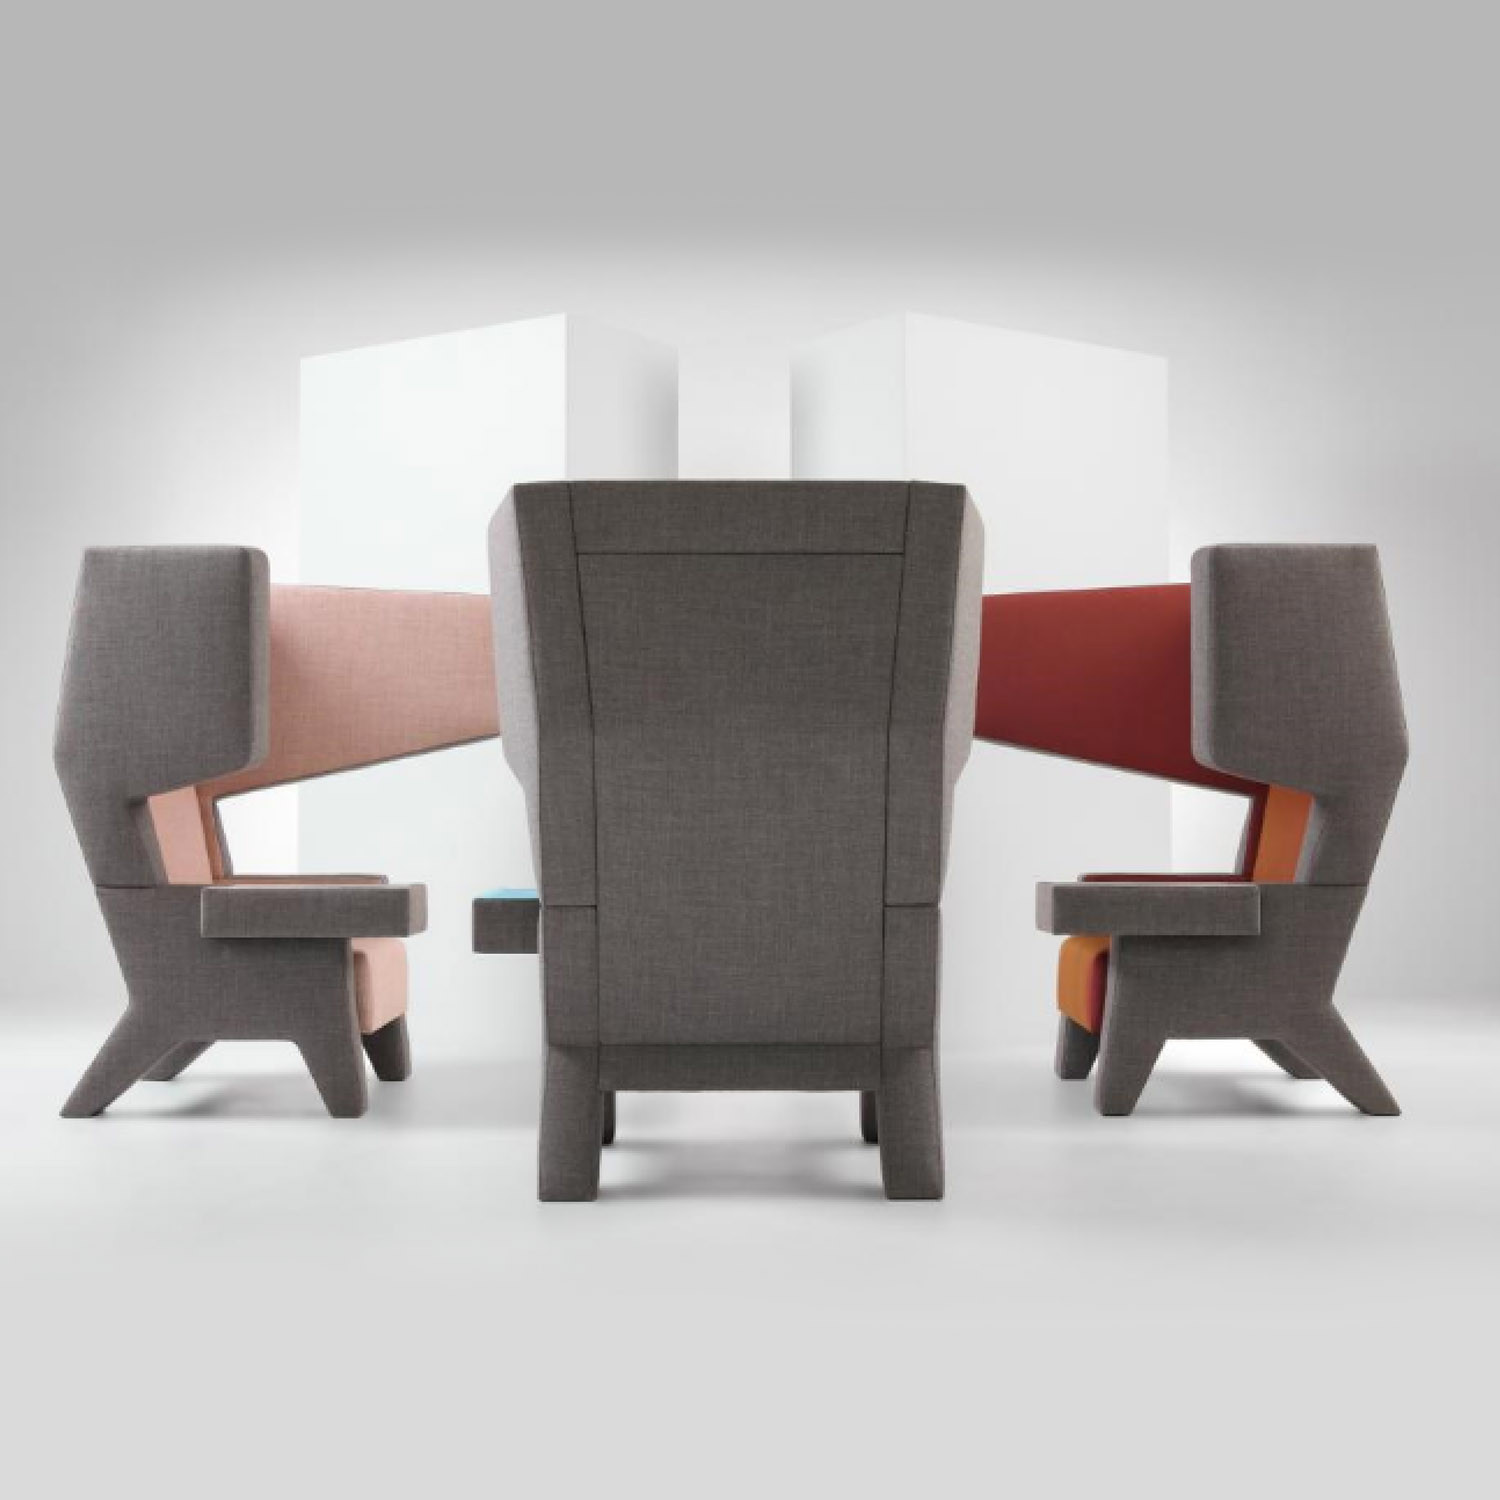 Acoustic Earchair Chair